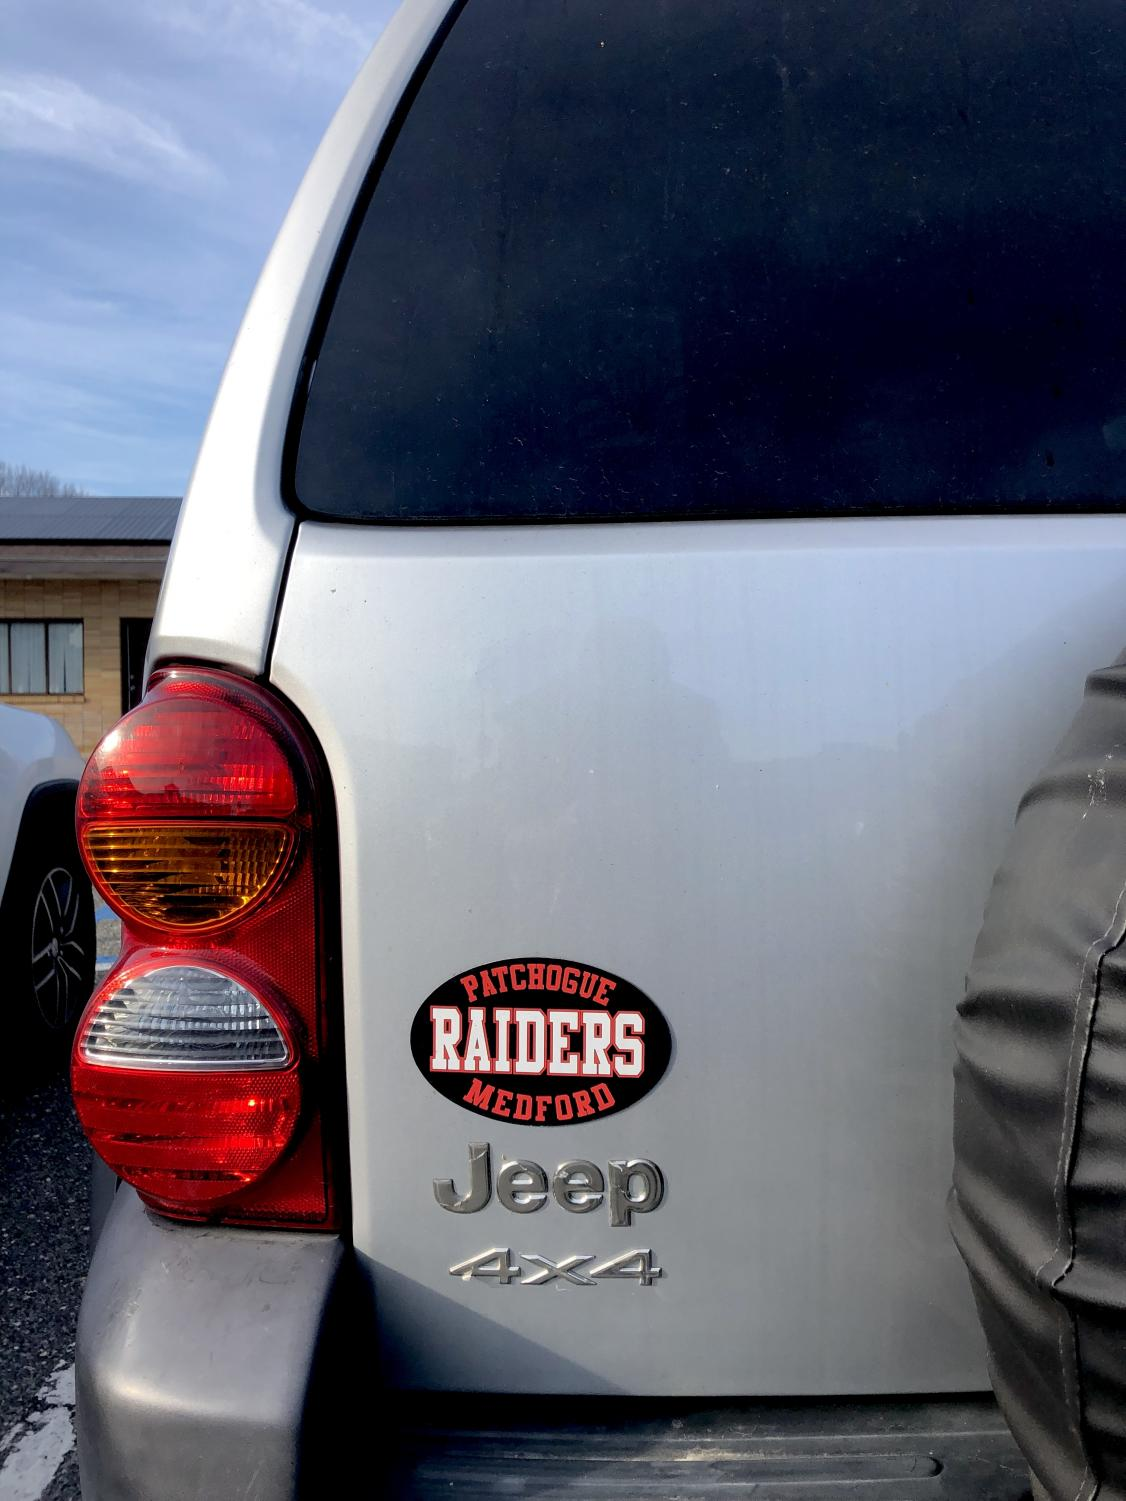 Whatever your first car is, be sure to accessorize it with Raider pride.